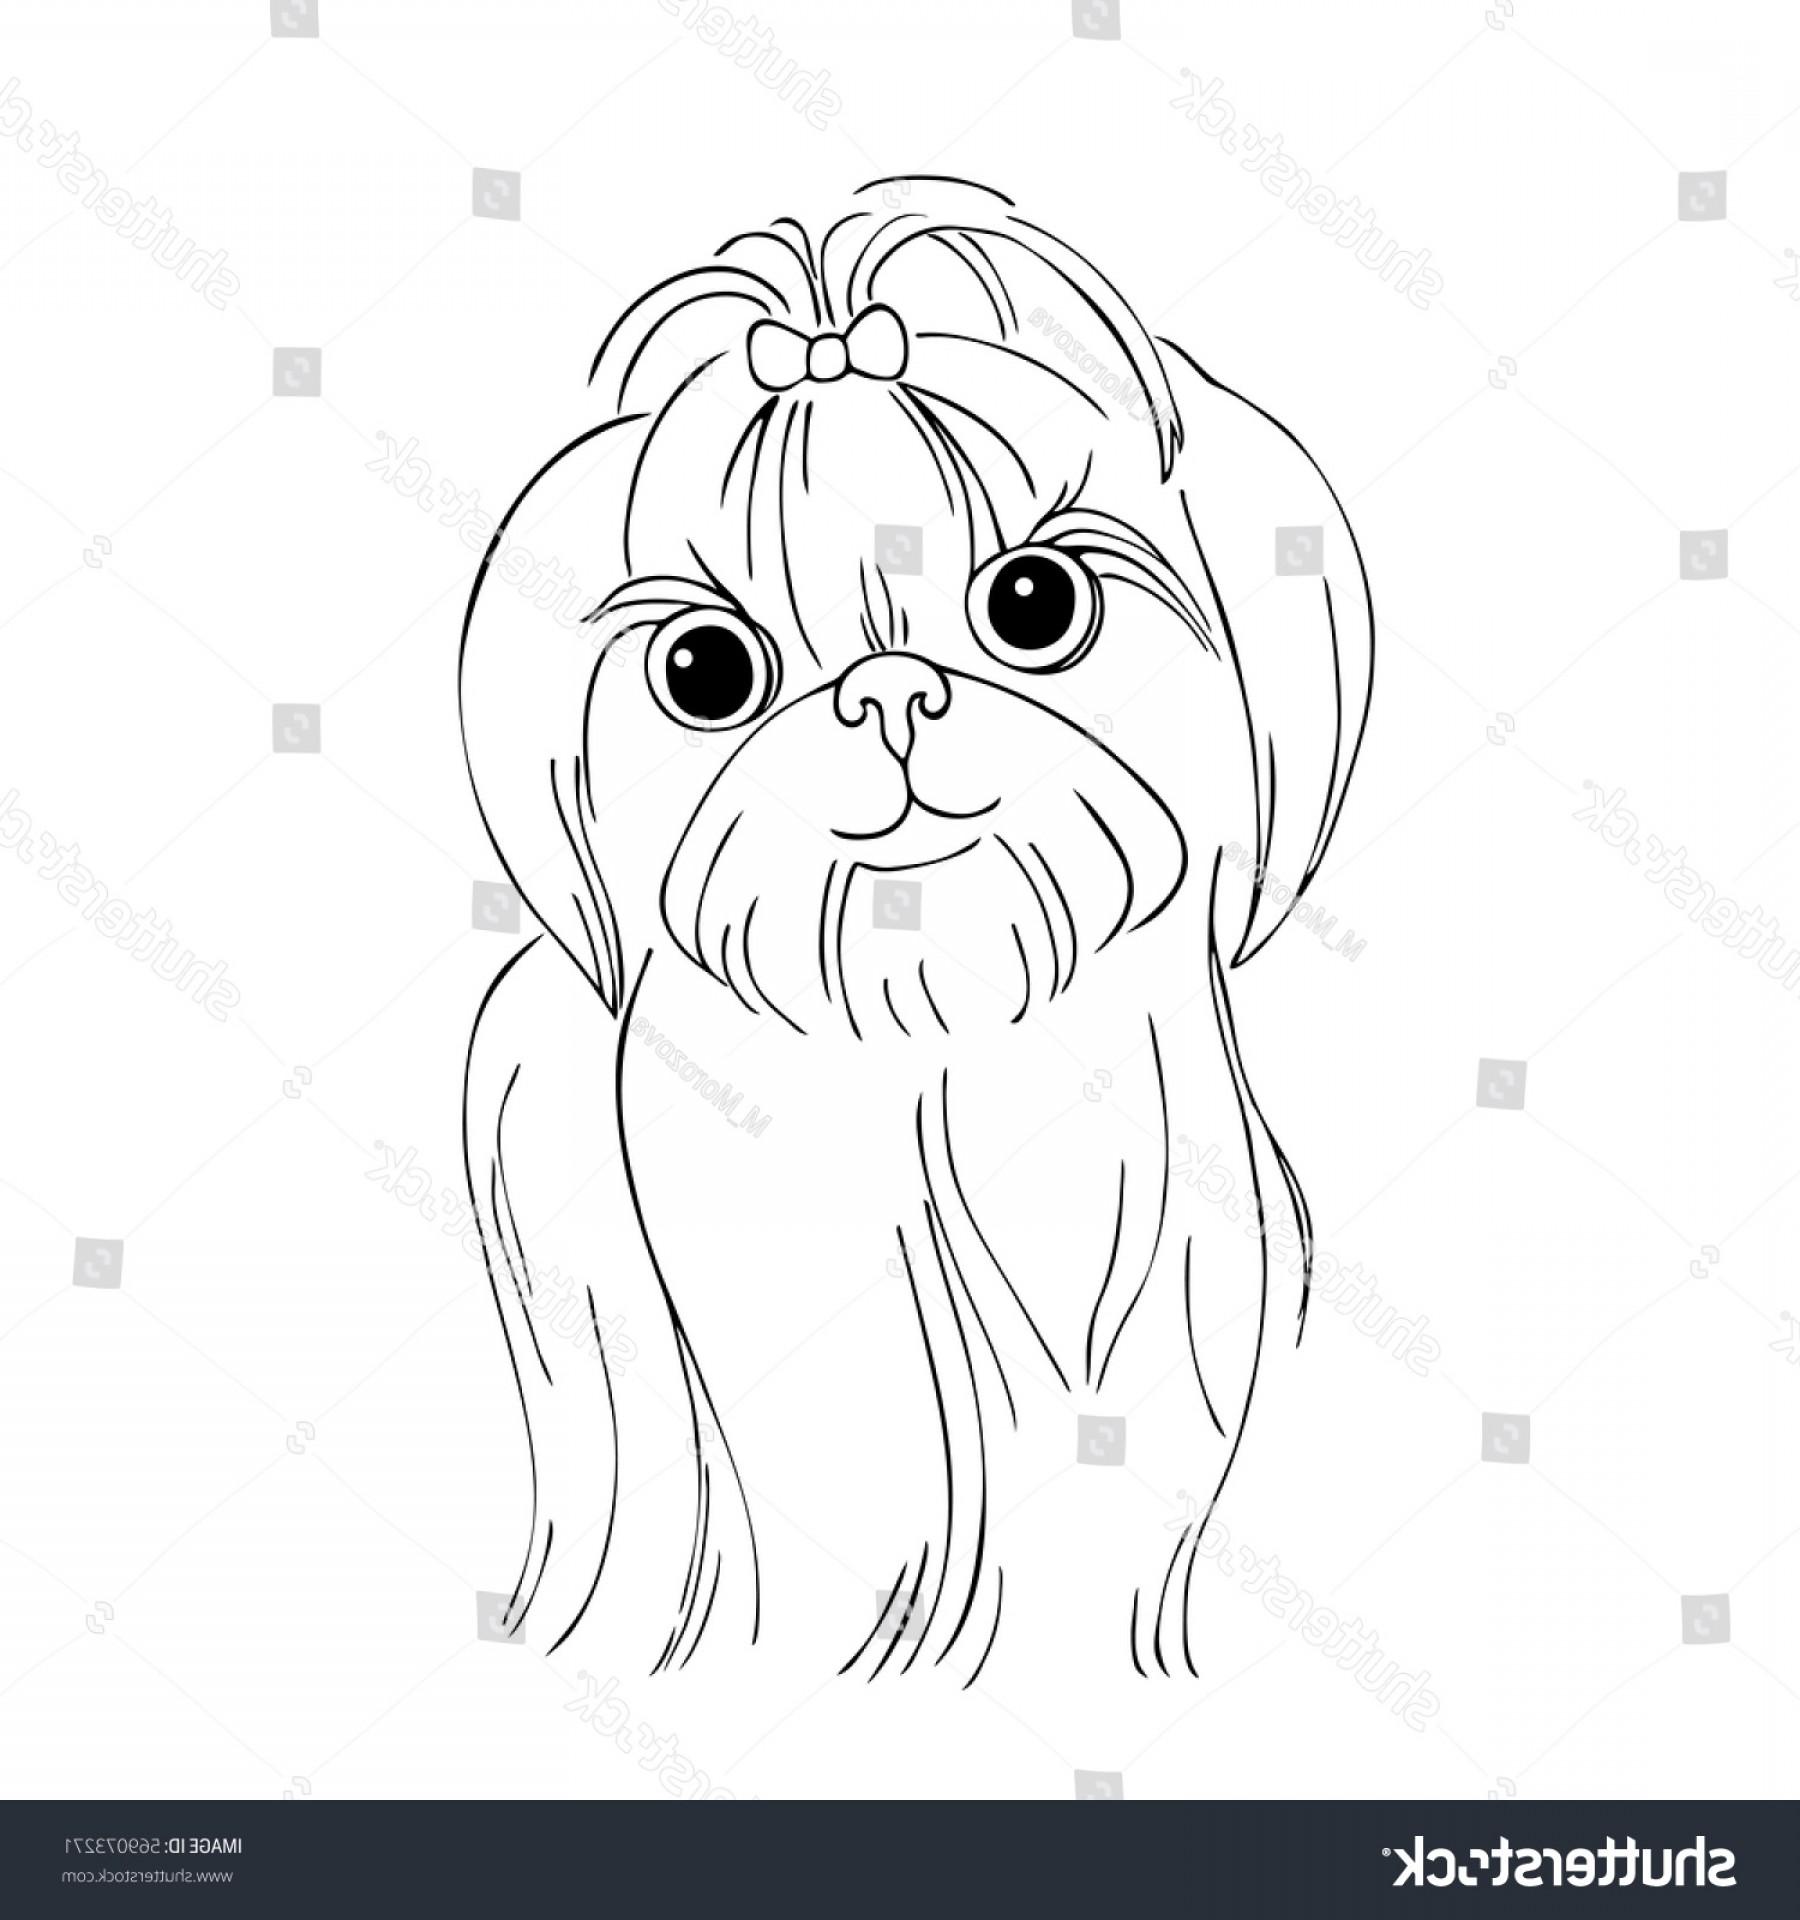 Shih Tzu Vector Siluete: Vector Monochrome Contour Illustration Shihtzu Dog